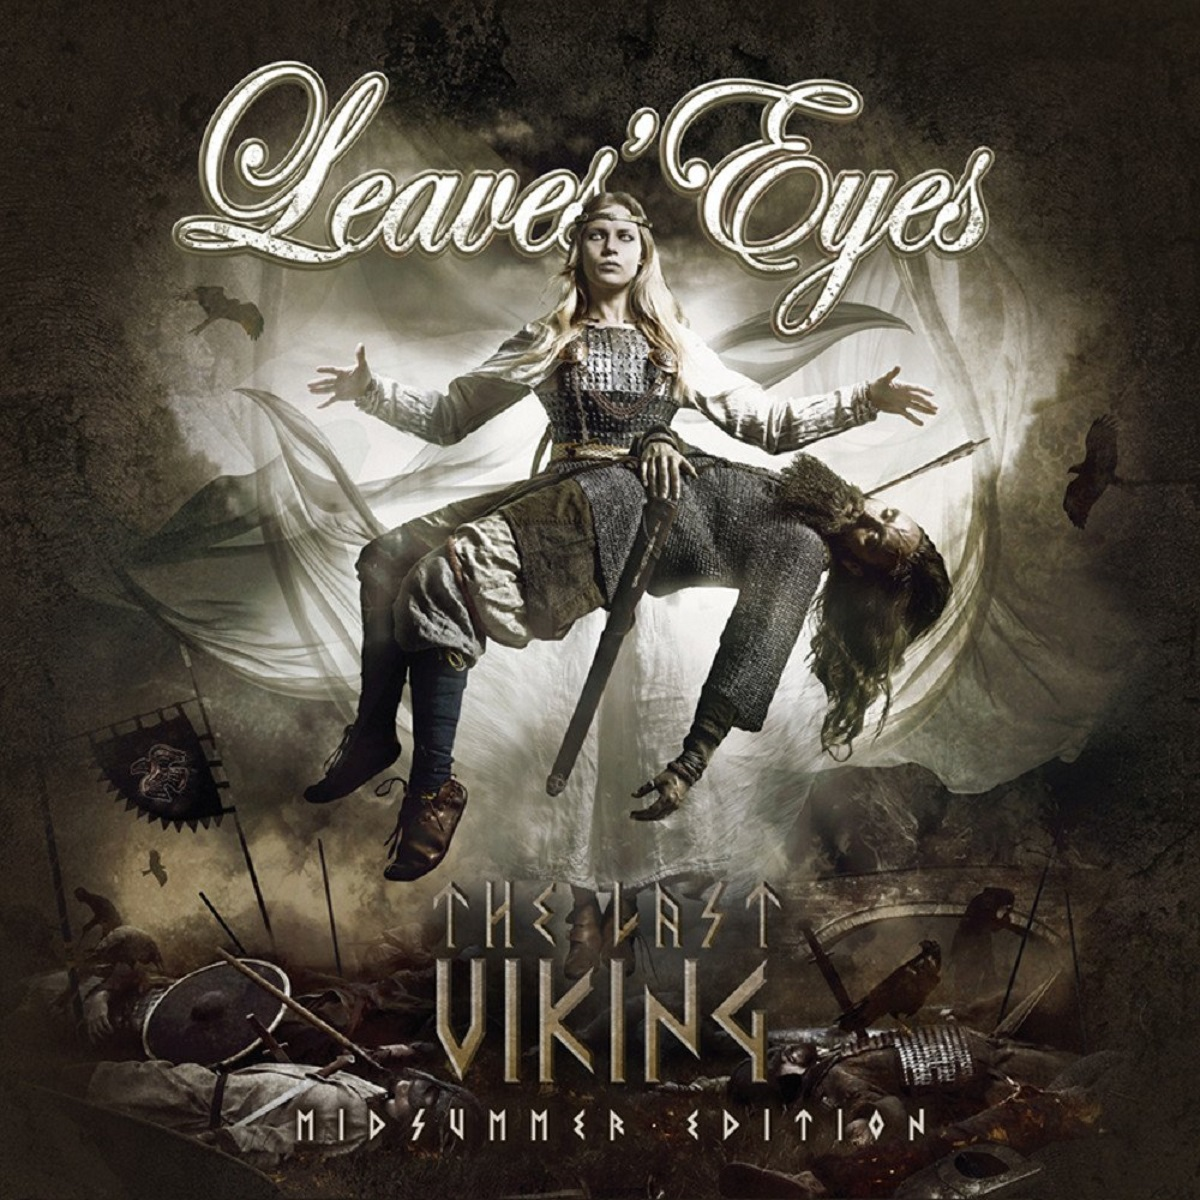 Review: Leaves Eyes – The Last Viking (Midsummer Edition)